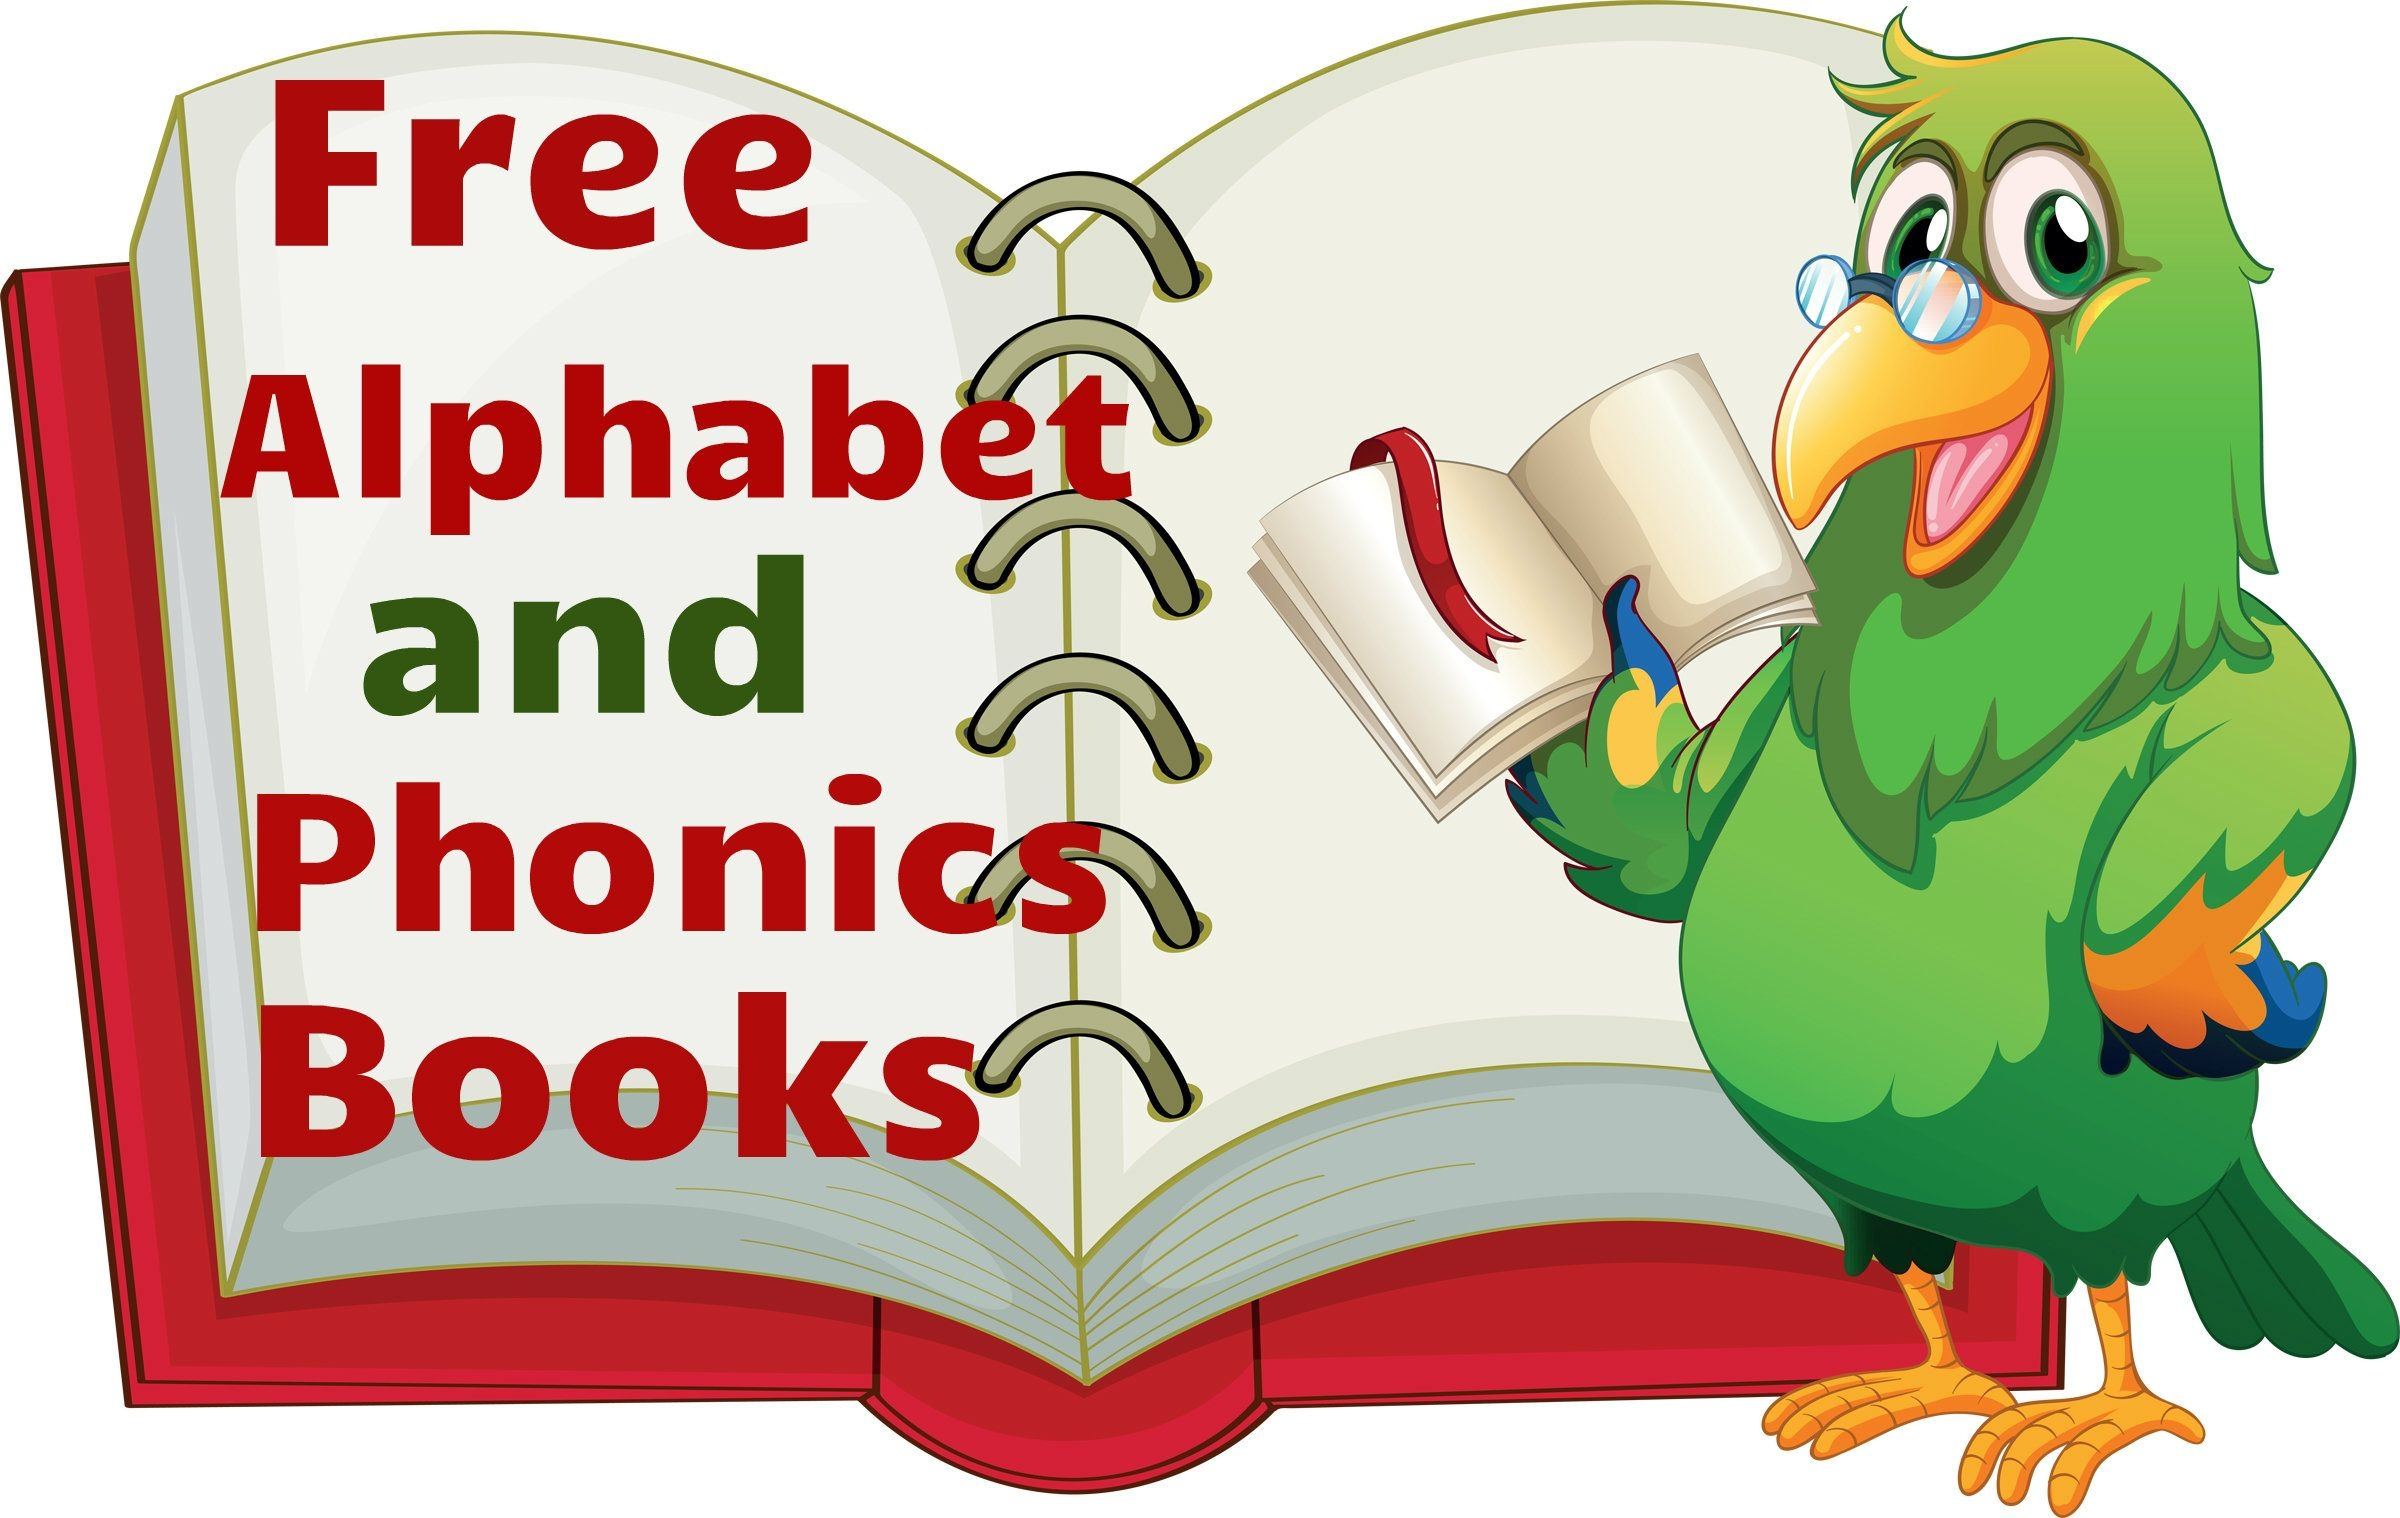 Free Printable And Downloadable Books To Teach Phonics! These Books - Free Printable Phonics Books